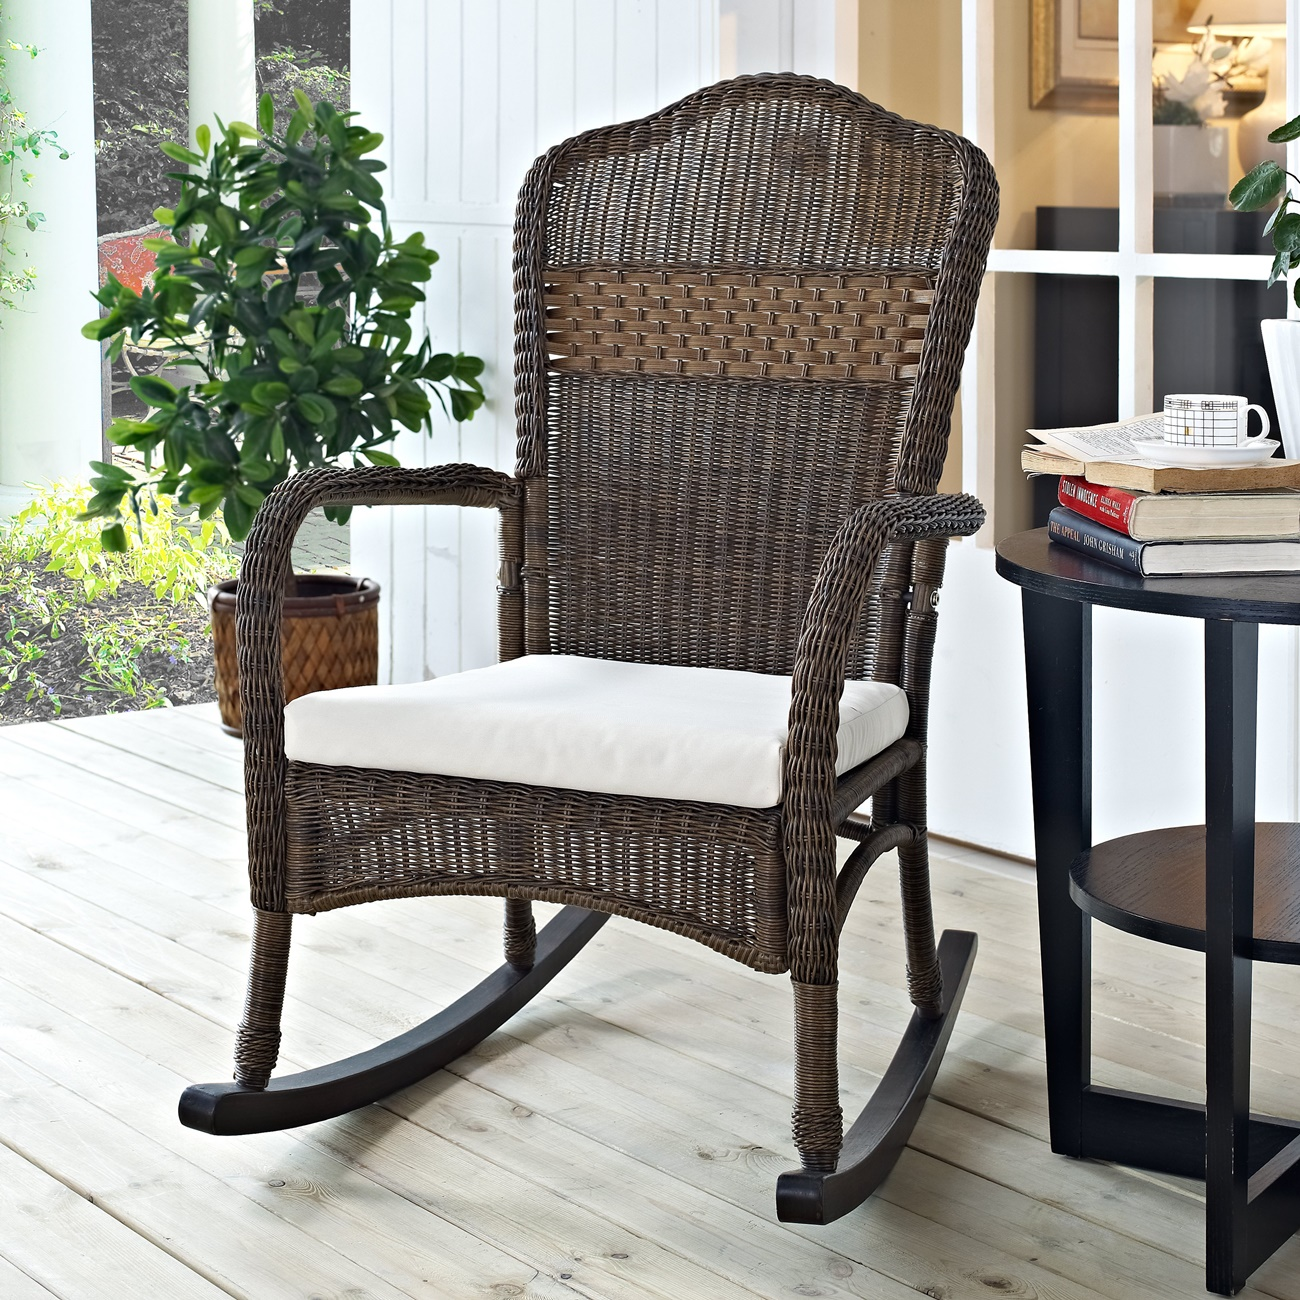 Image of: Wicker Patio Rocking Chair